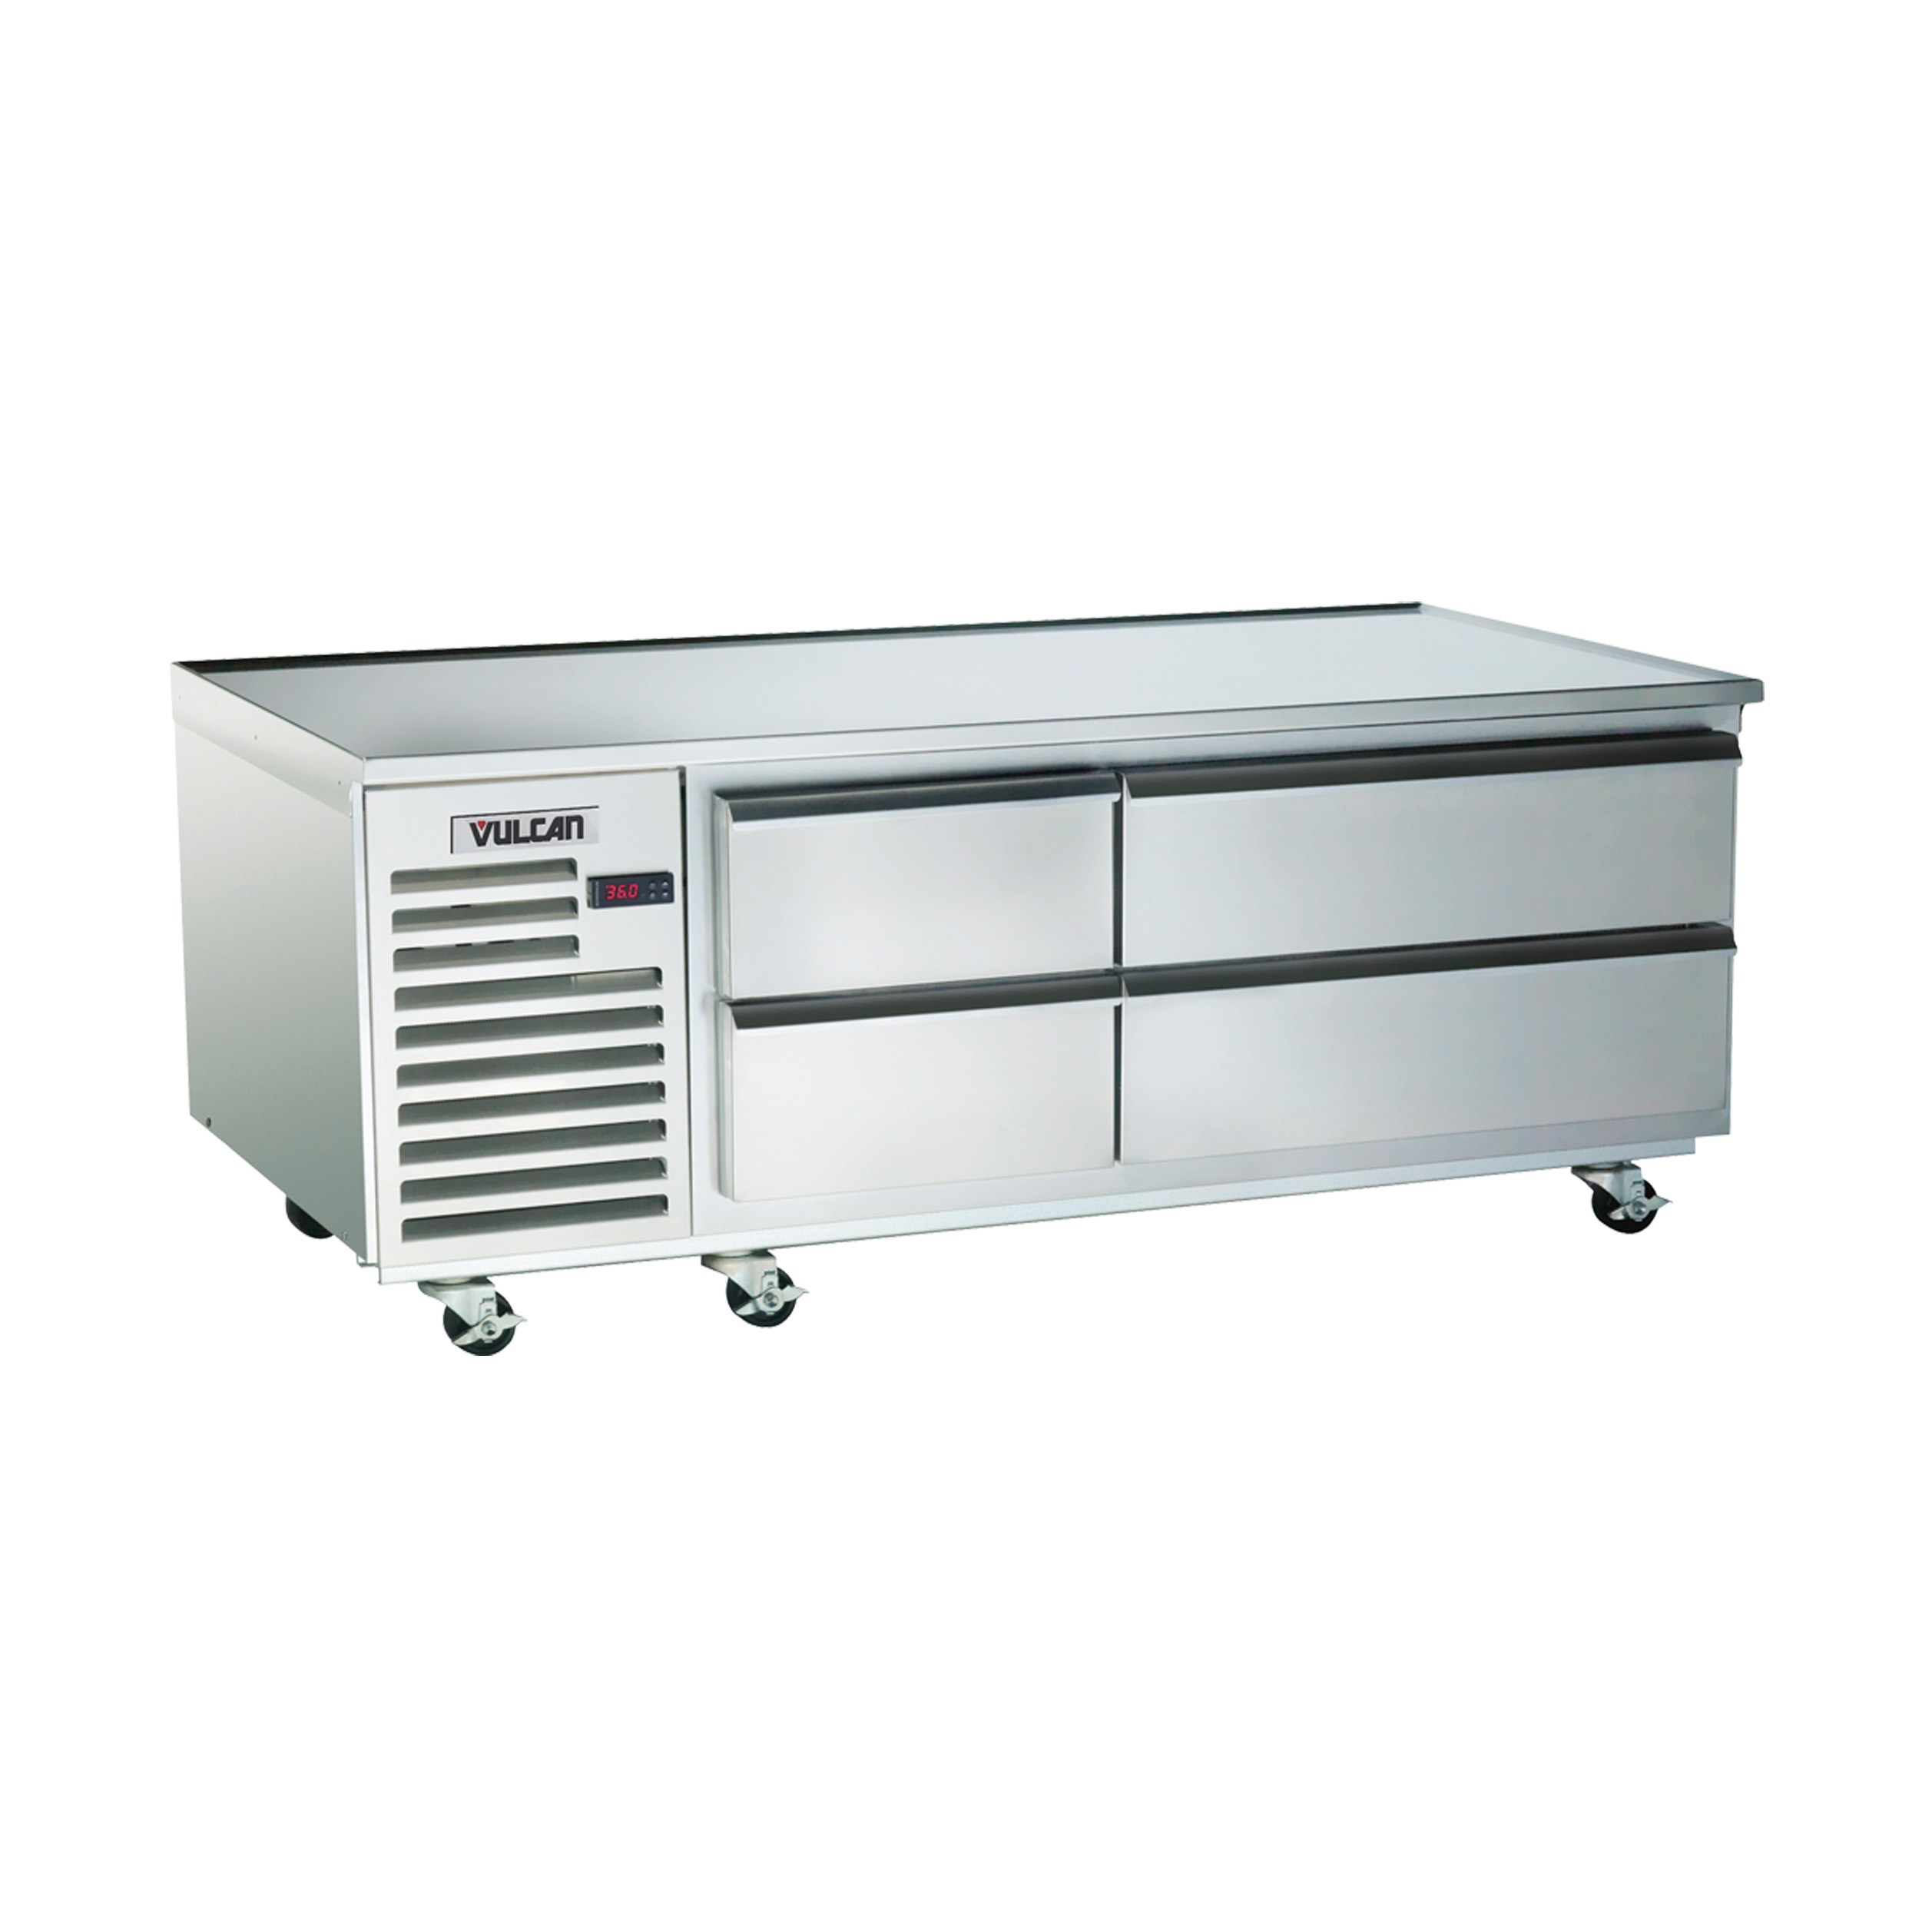 Vulcan ARS60 equipment stand, refrigerated base